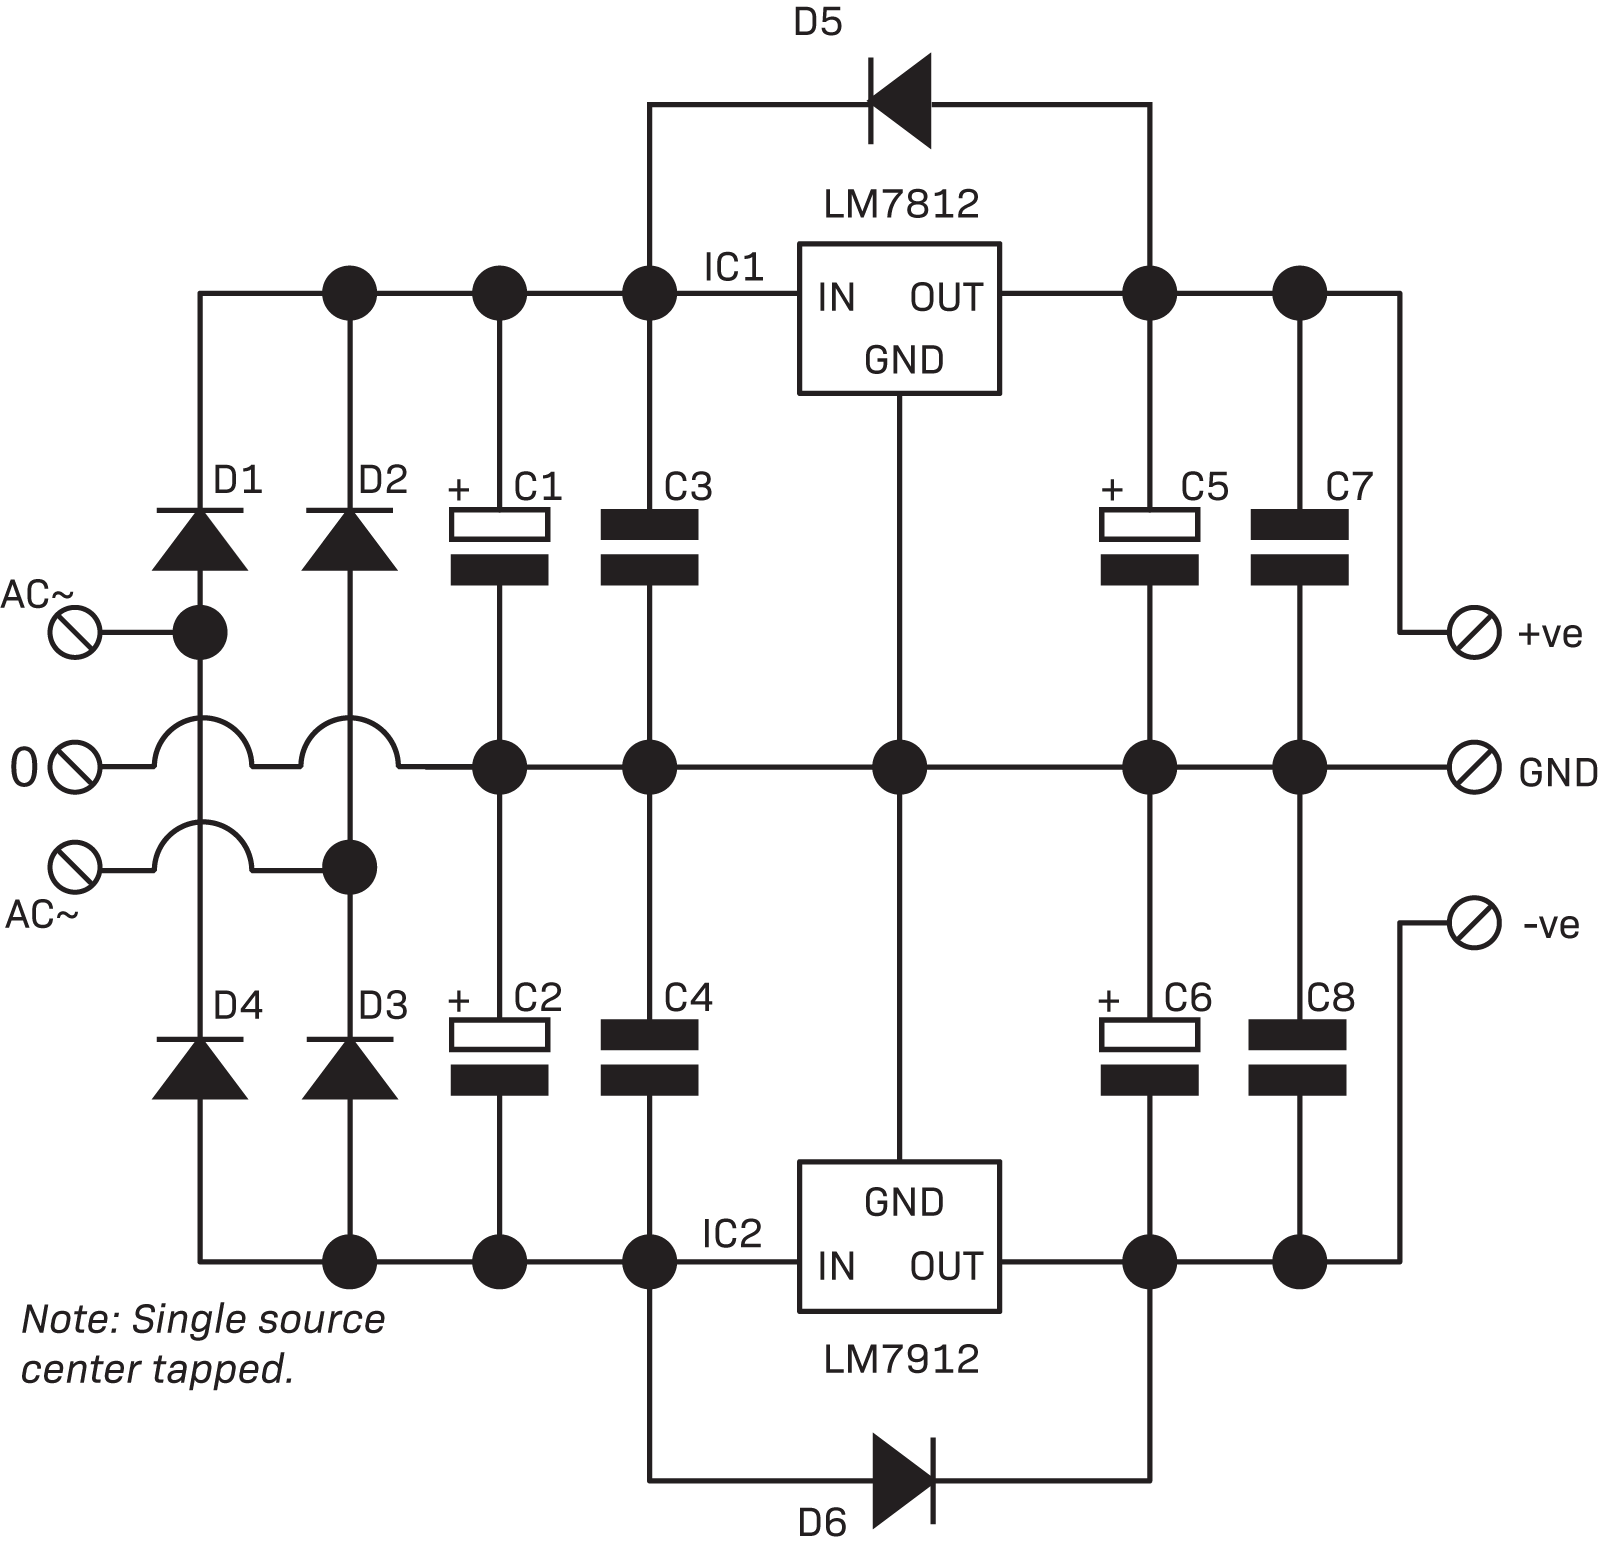 Part 3 The Linear Power Supply Diyode Magazine 12vdc Regulated With Schematic Diagram Share Supplies Connected Together 2 Circuit Is Useful For Op Amps And Devices Requiring